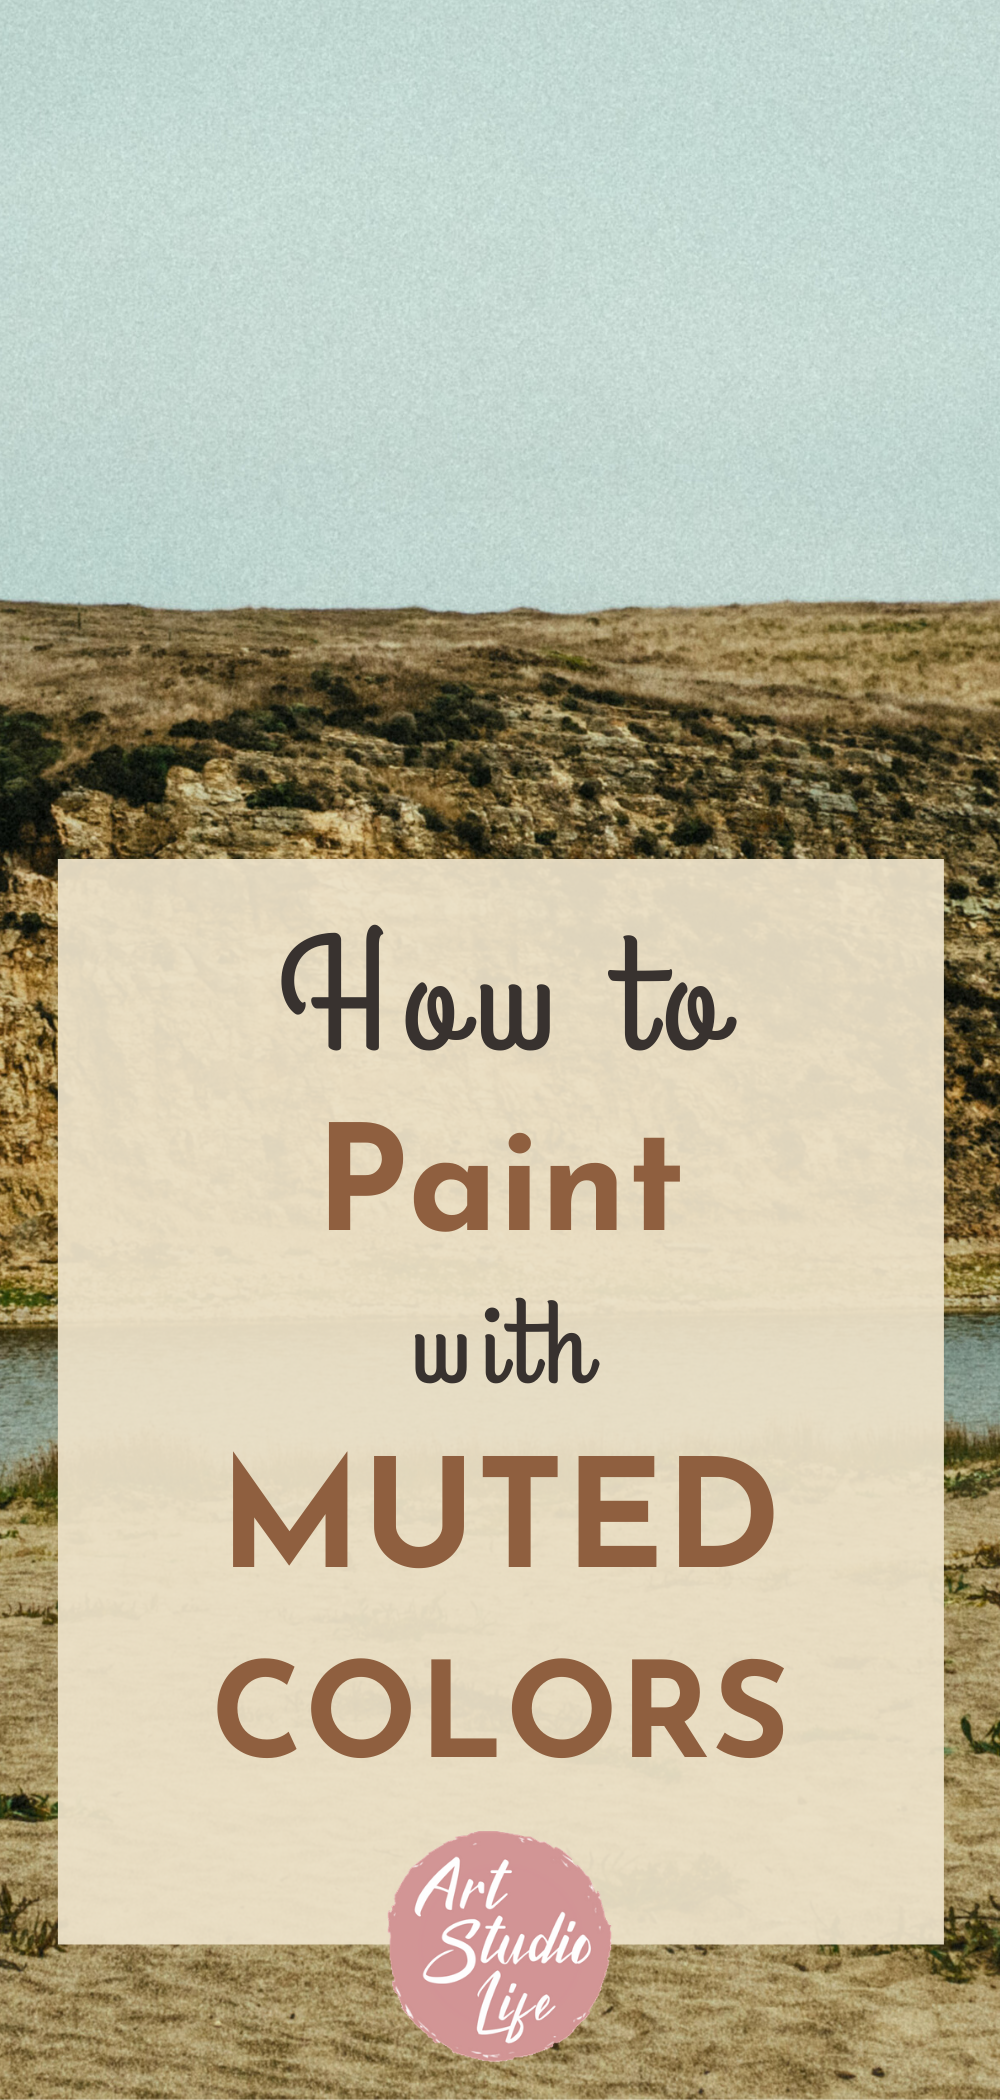 What Are Muted Colors & How to Use a Muted Colors Palette ...